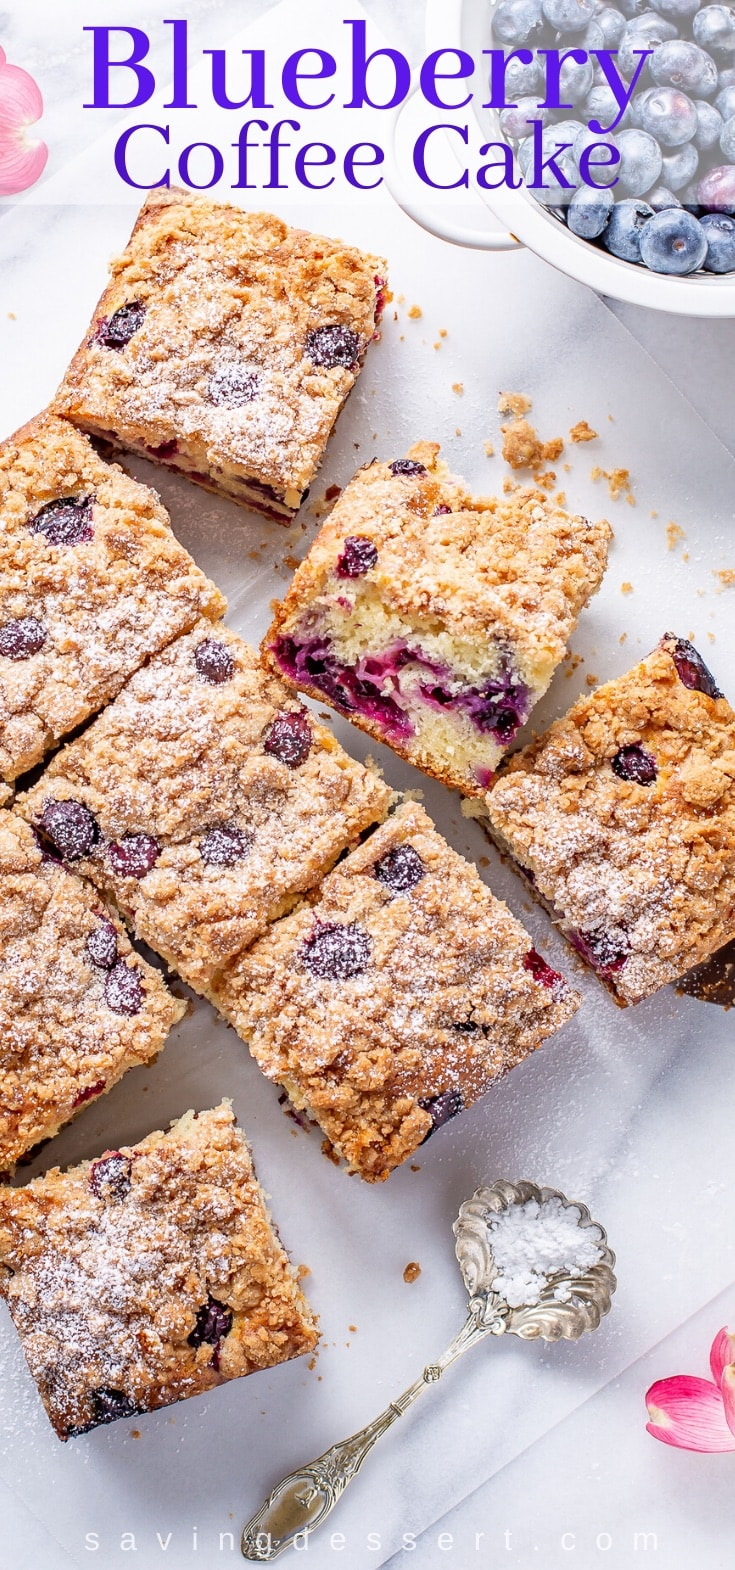 Sliced coffee cake on a table with blueberries and a streusel topping